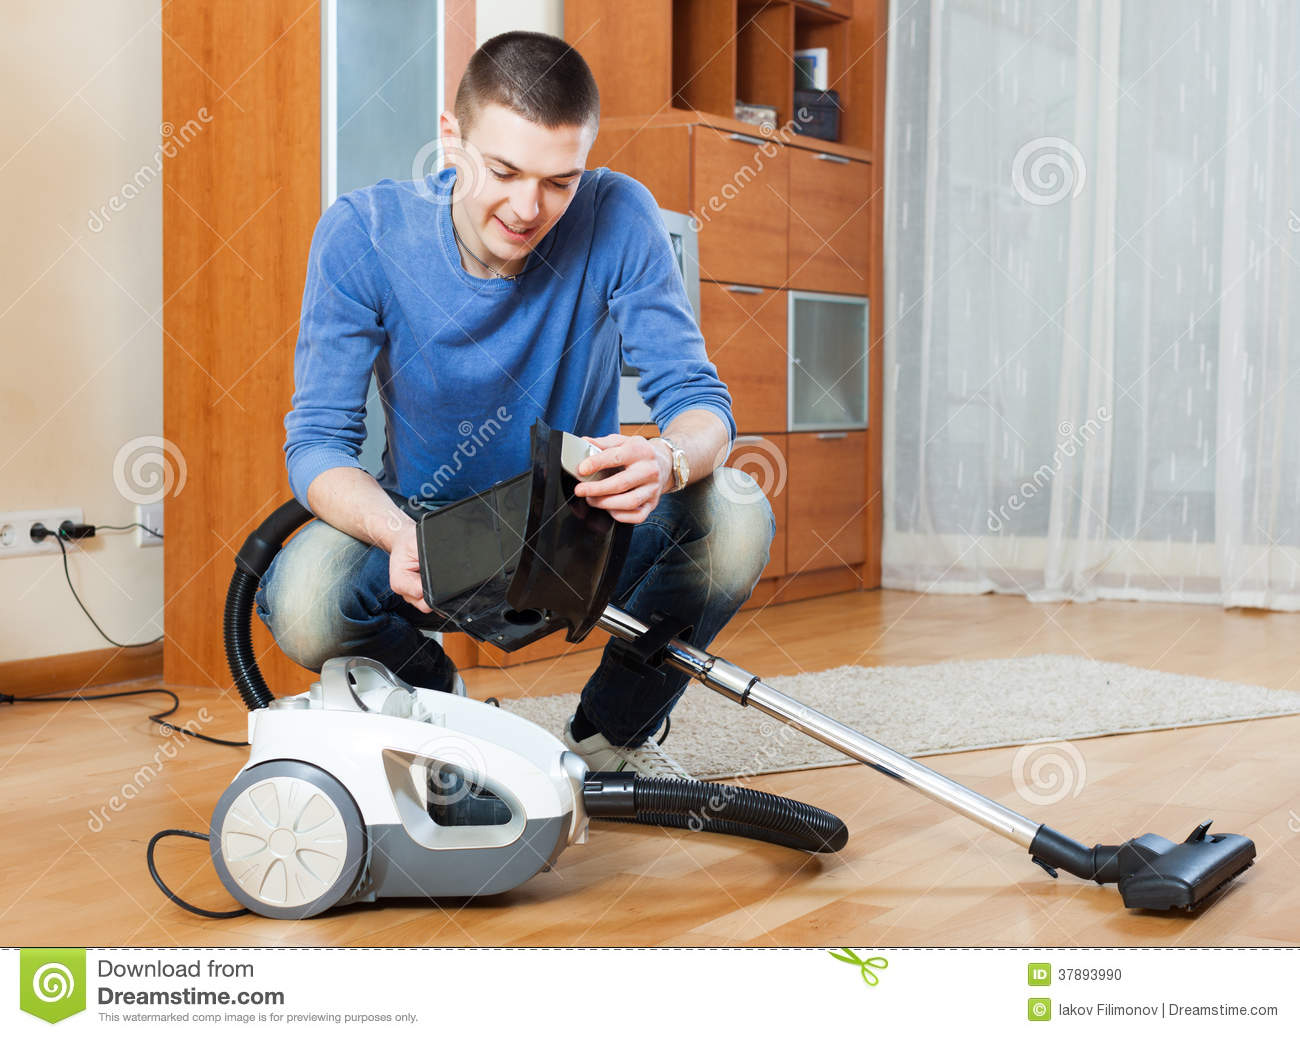 Man Vacuuming With Vacuum Cleaner On Parquet Floor In